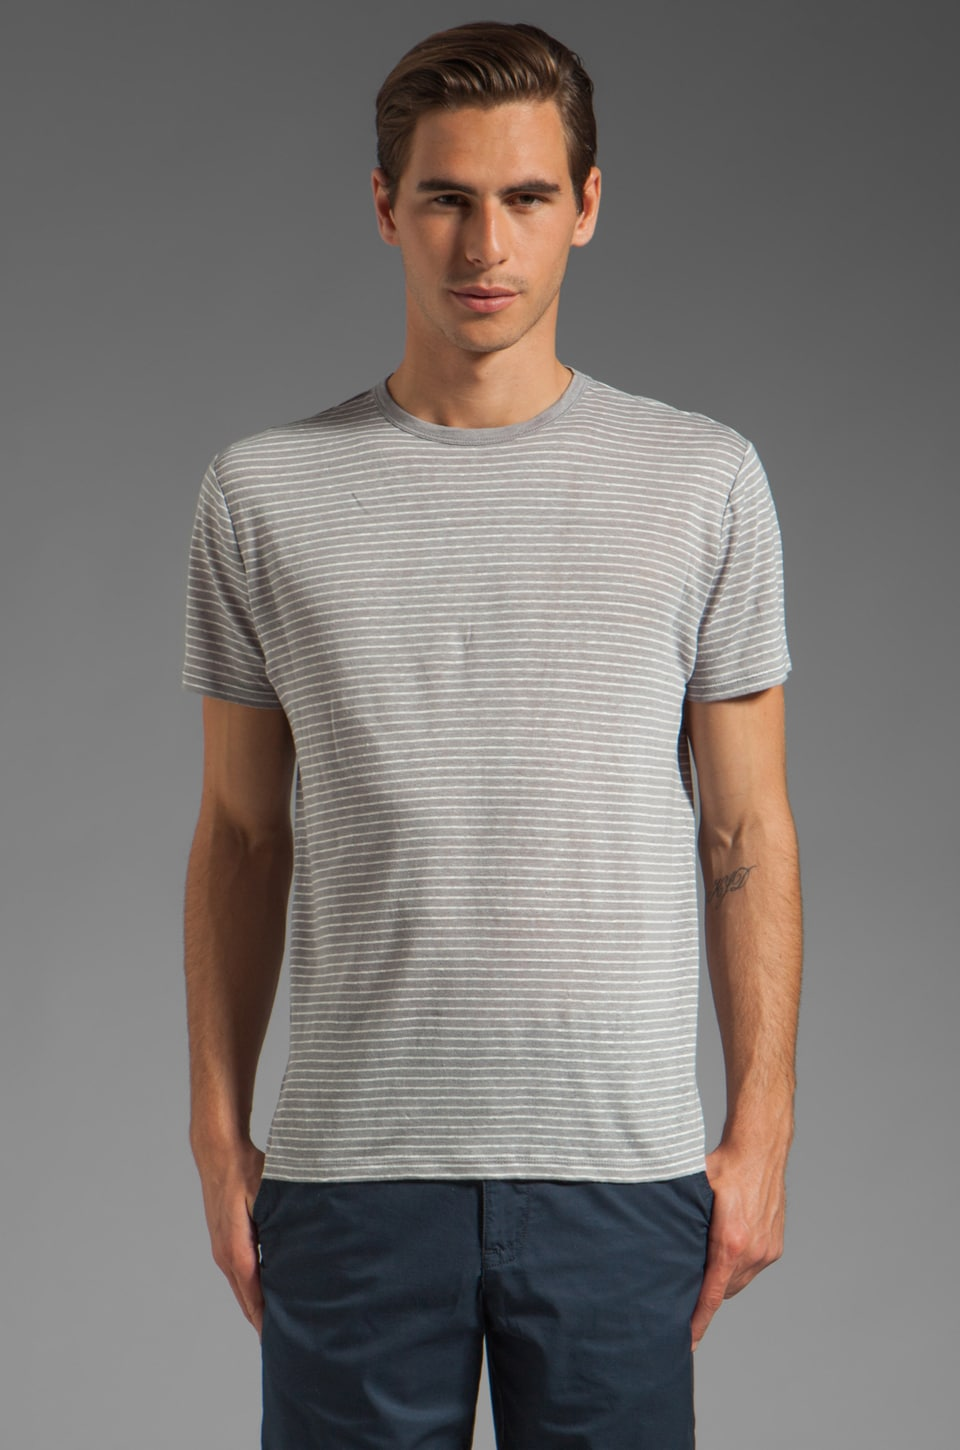 Vince Striped Linen Tee in Sliver Fin/Ecru